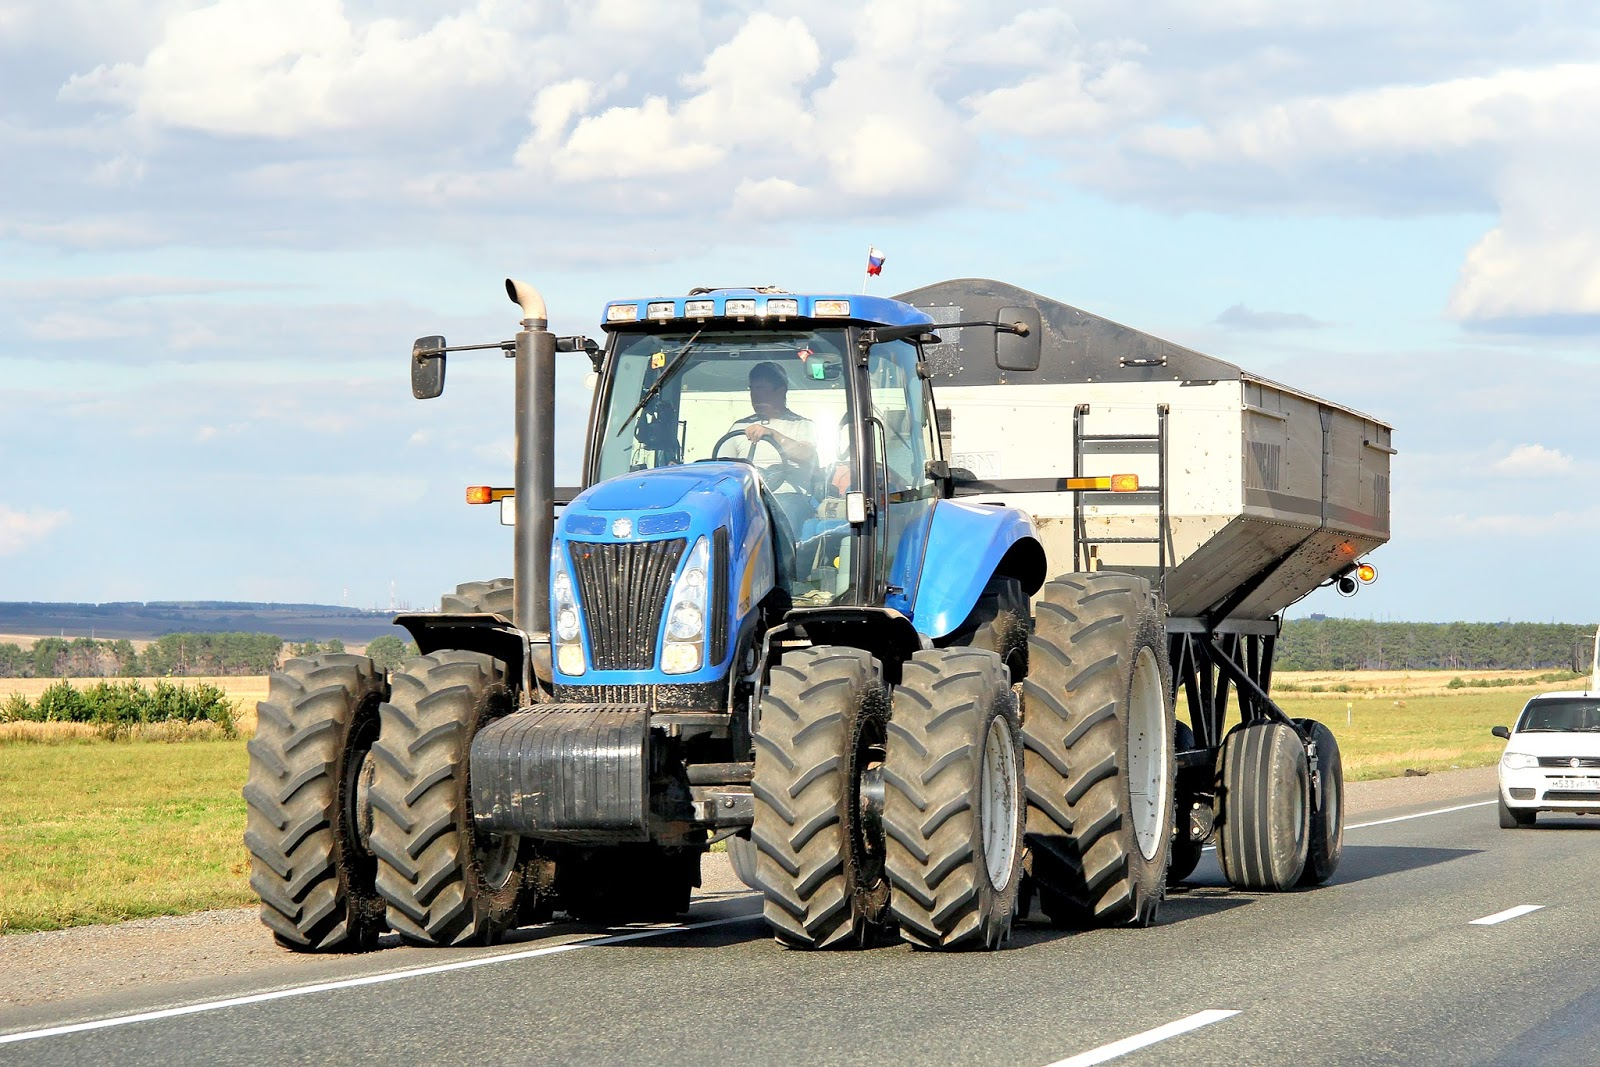 Secura blog tractor and farm equipment safety on the road tractor and farm equipment safety on the road sciox Image collections